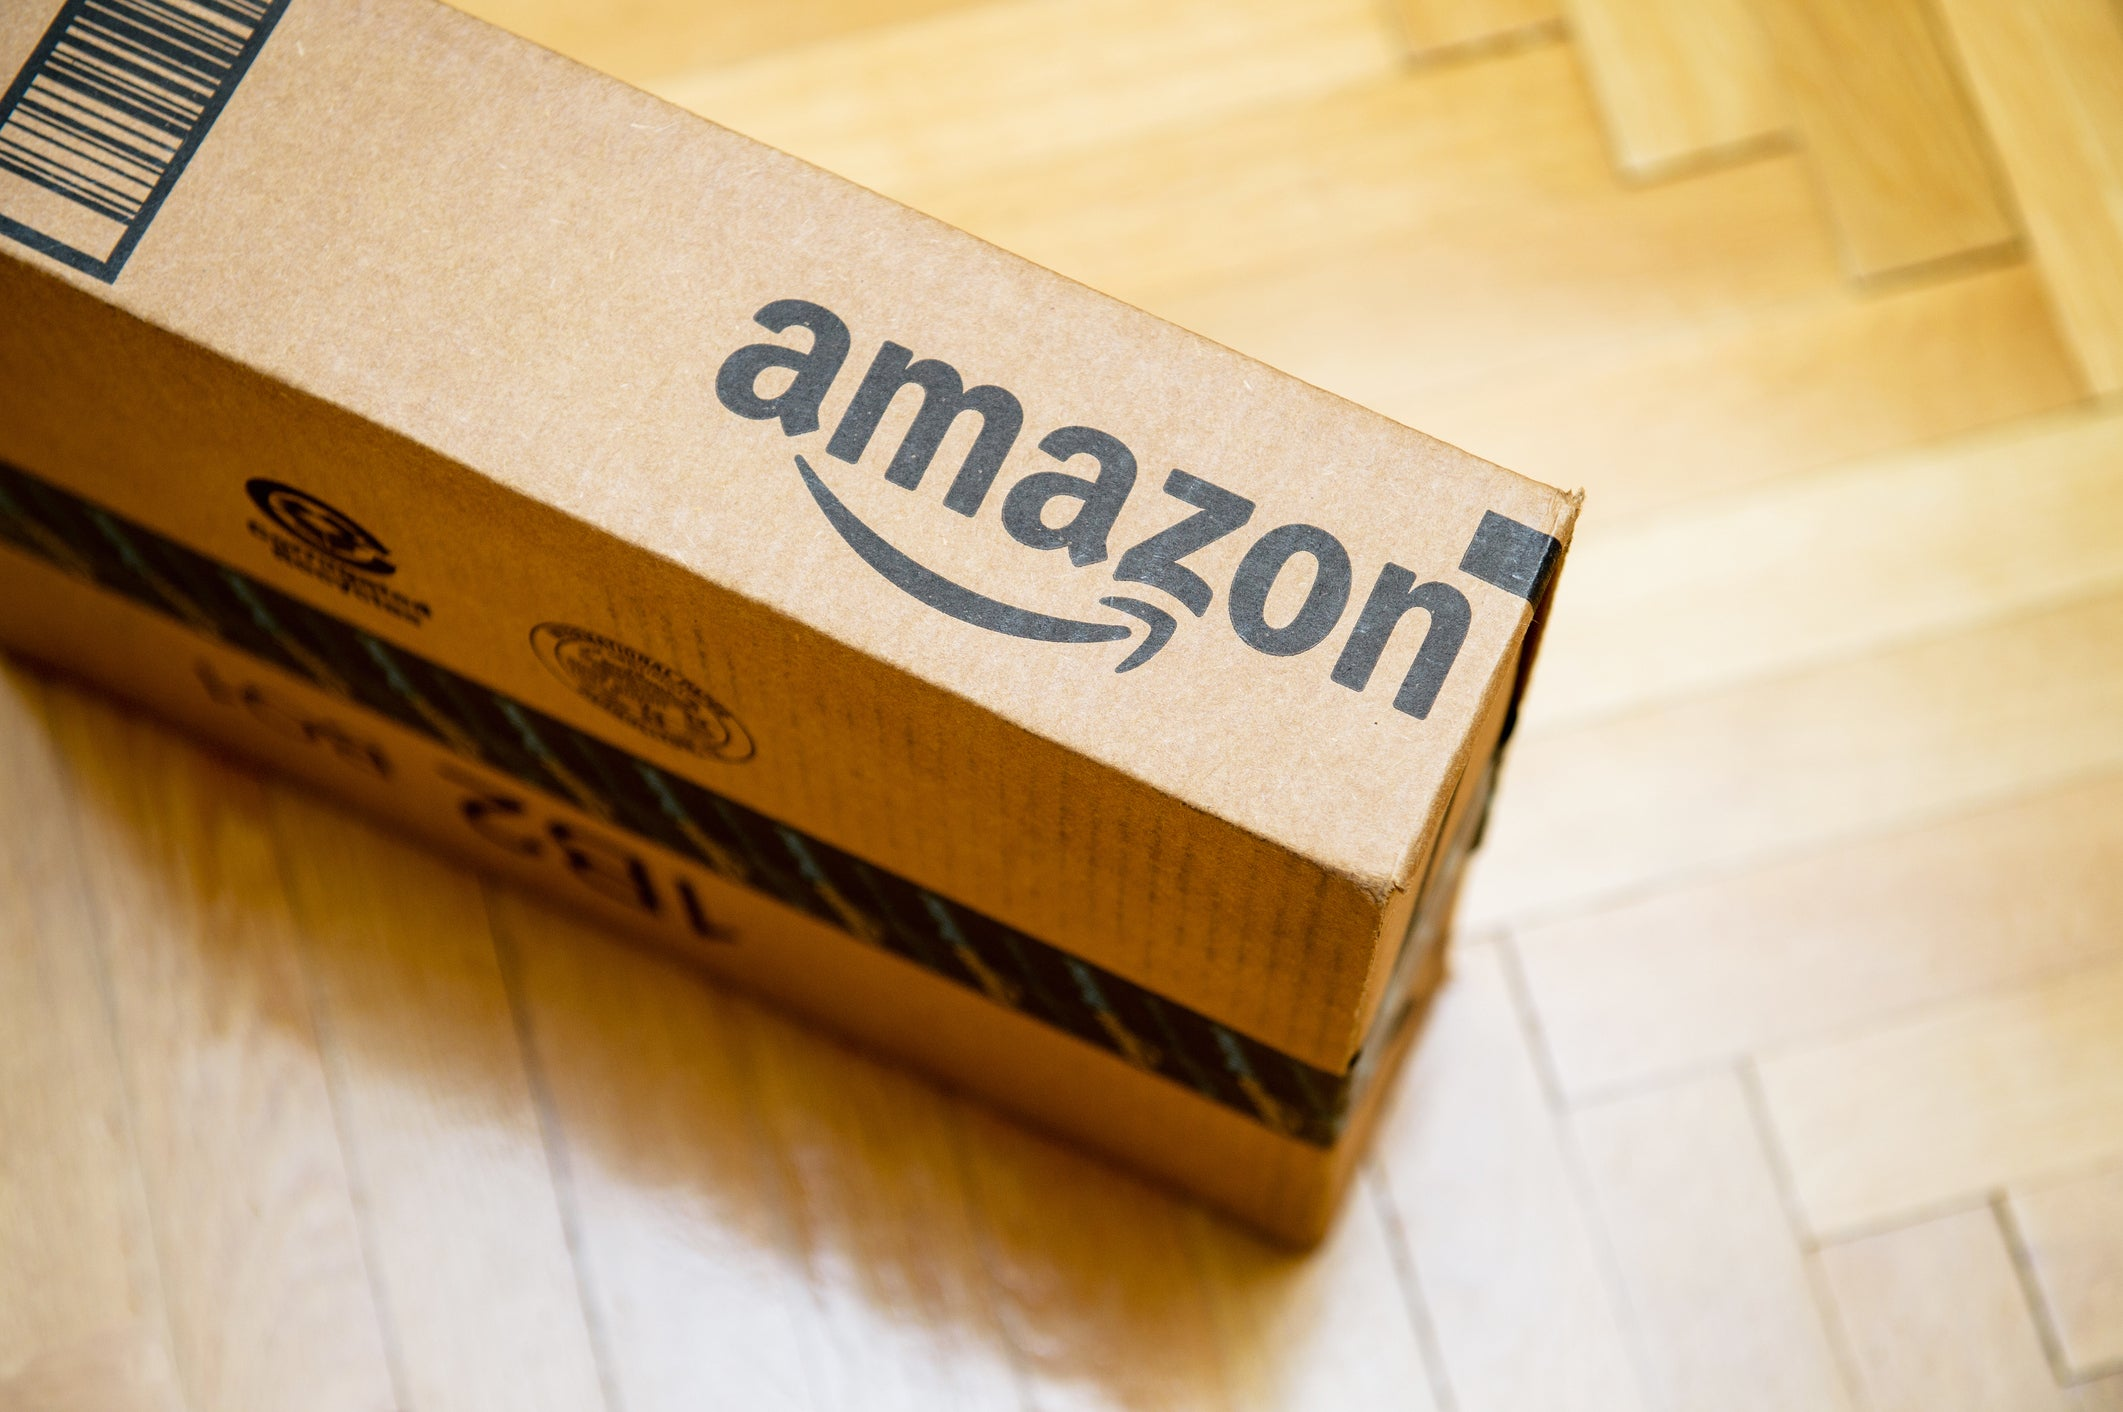 How to get up to 5x points on Amazon purchases